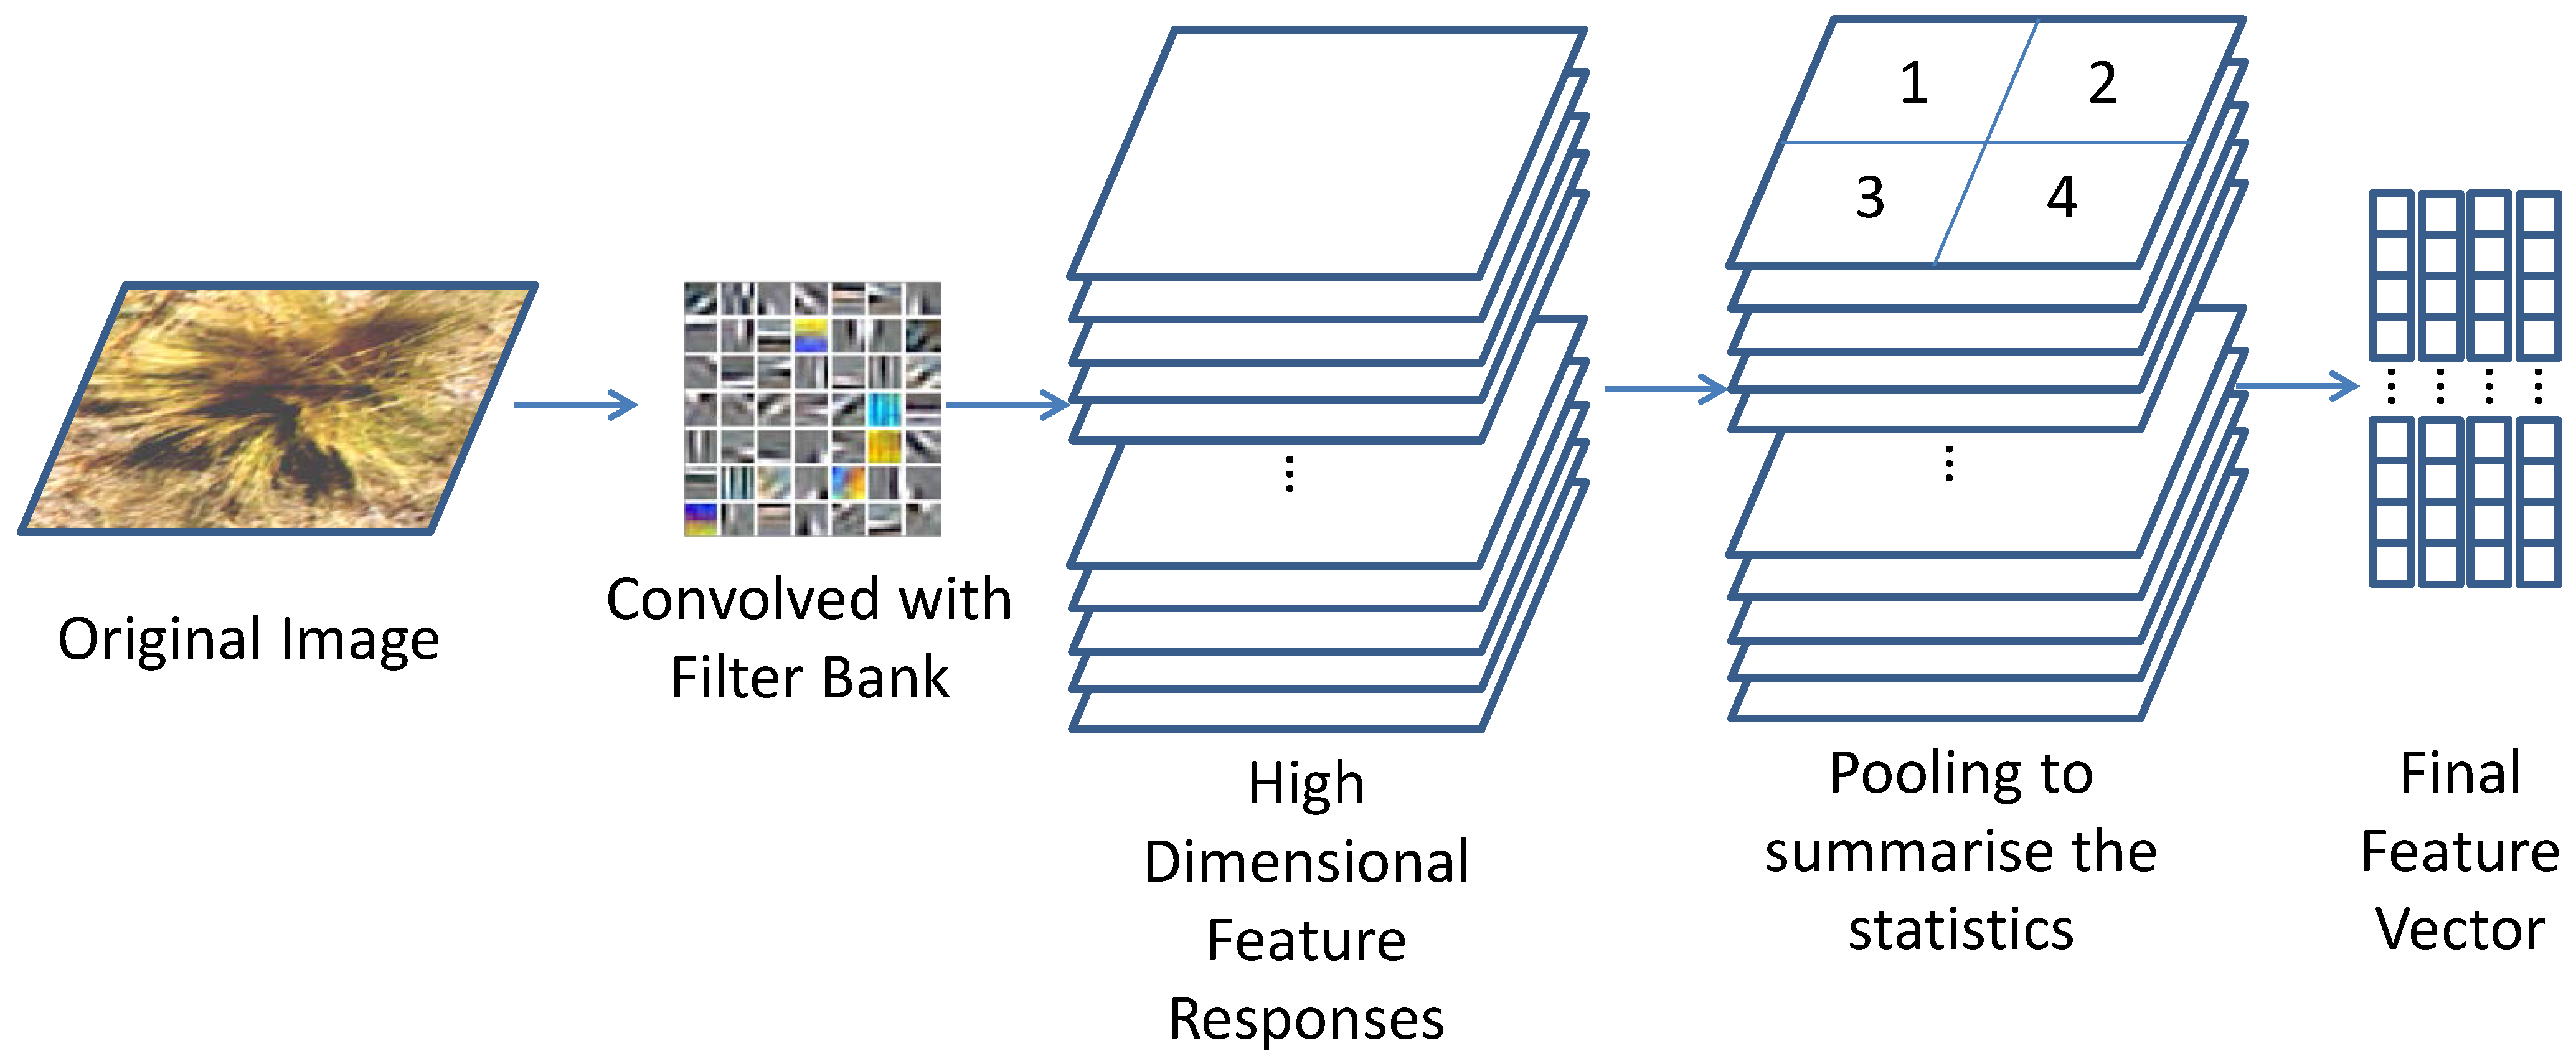 classification remote sensing image Image classification in remote sensing - download as pdf file (pdf), text file (txt) or read online.